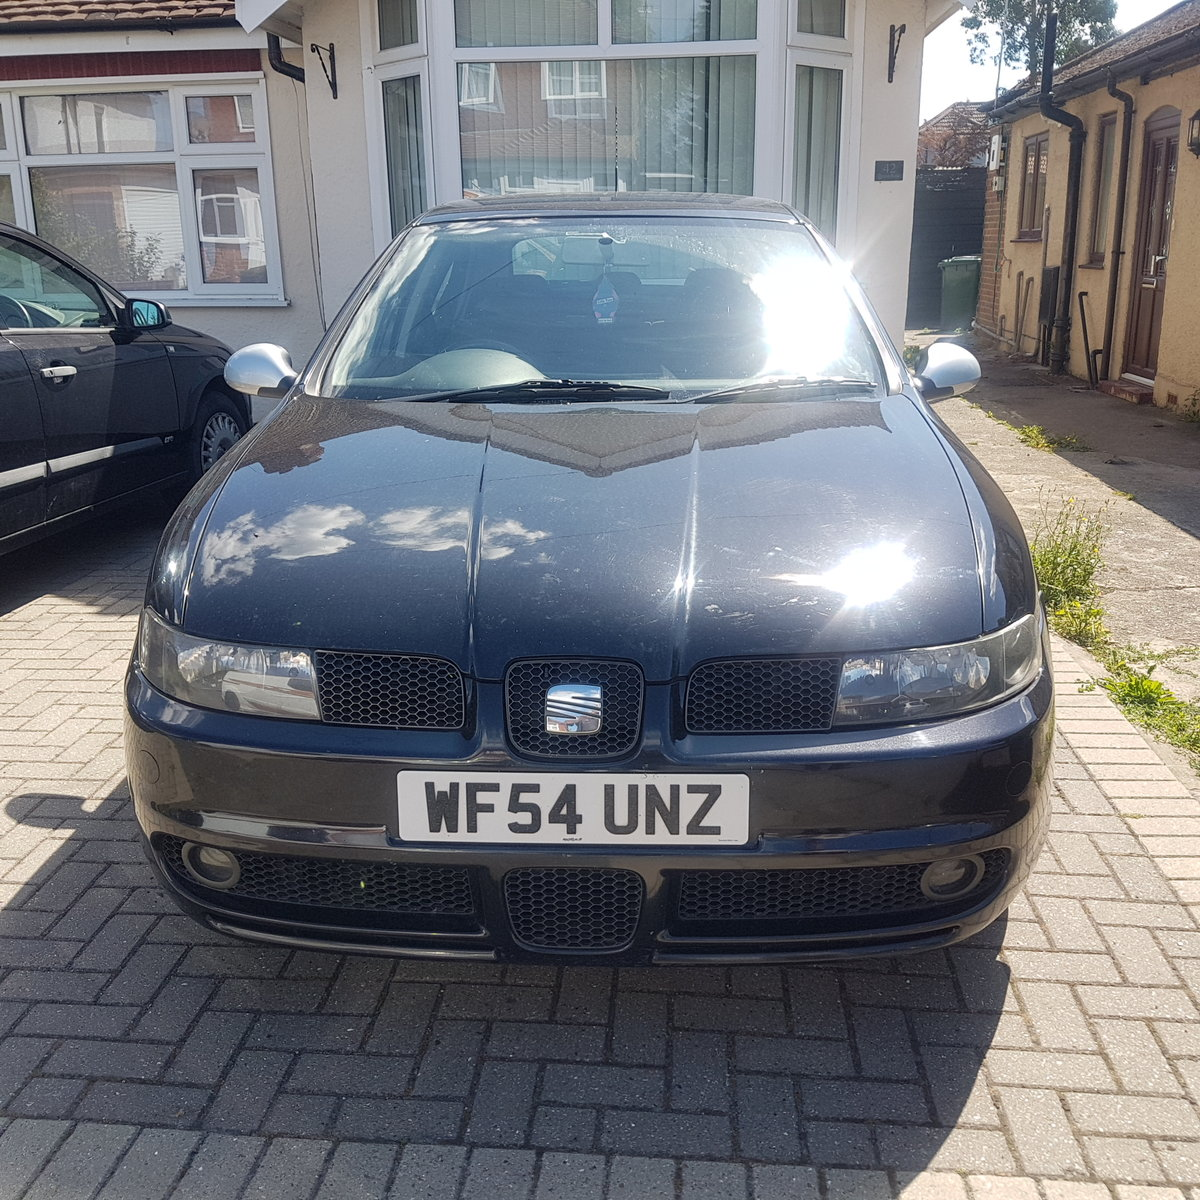 2004 Seat Leon FR diesel 2.0tdi SOLD (picture 2 of 5)